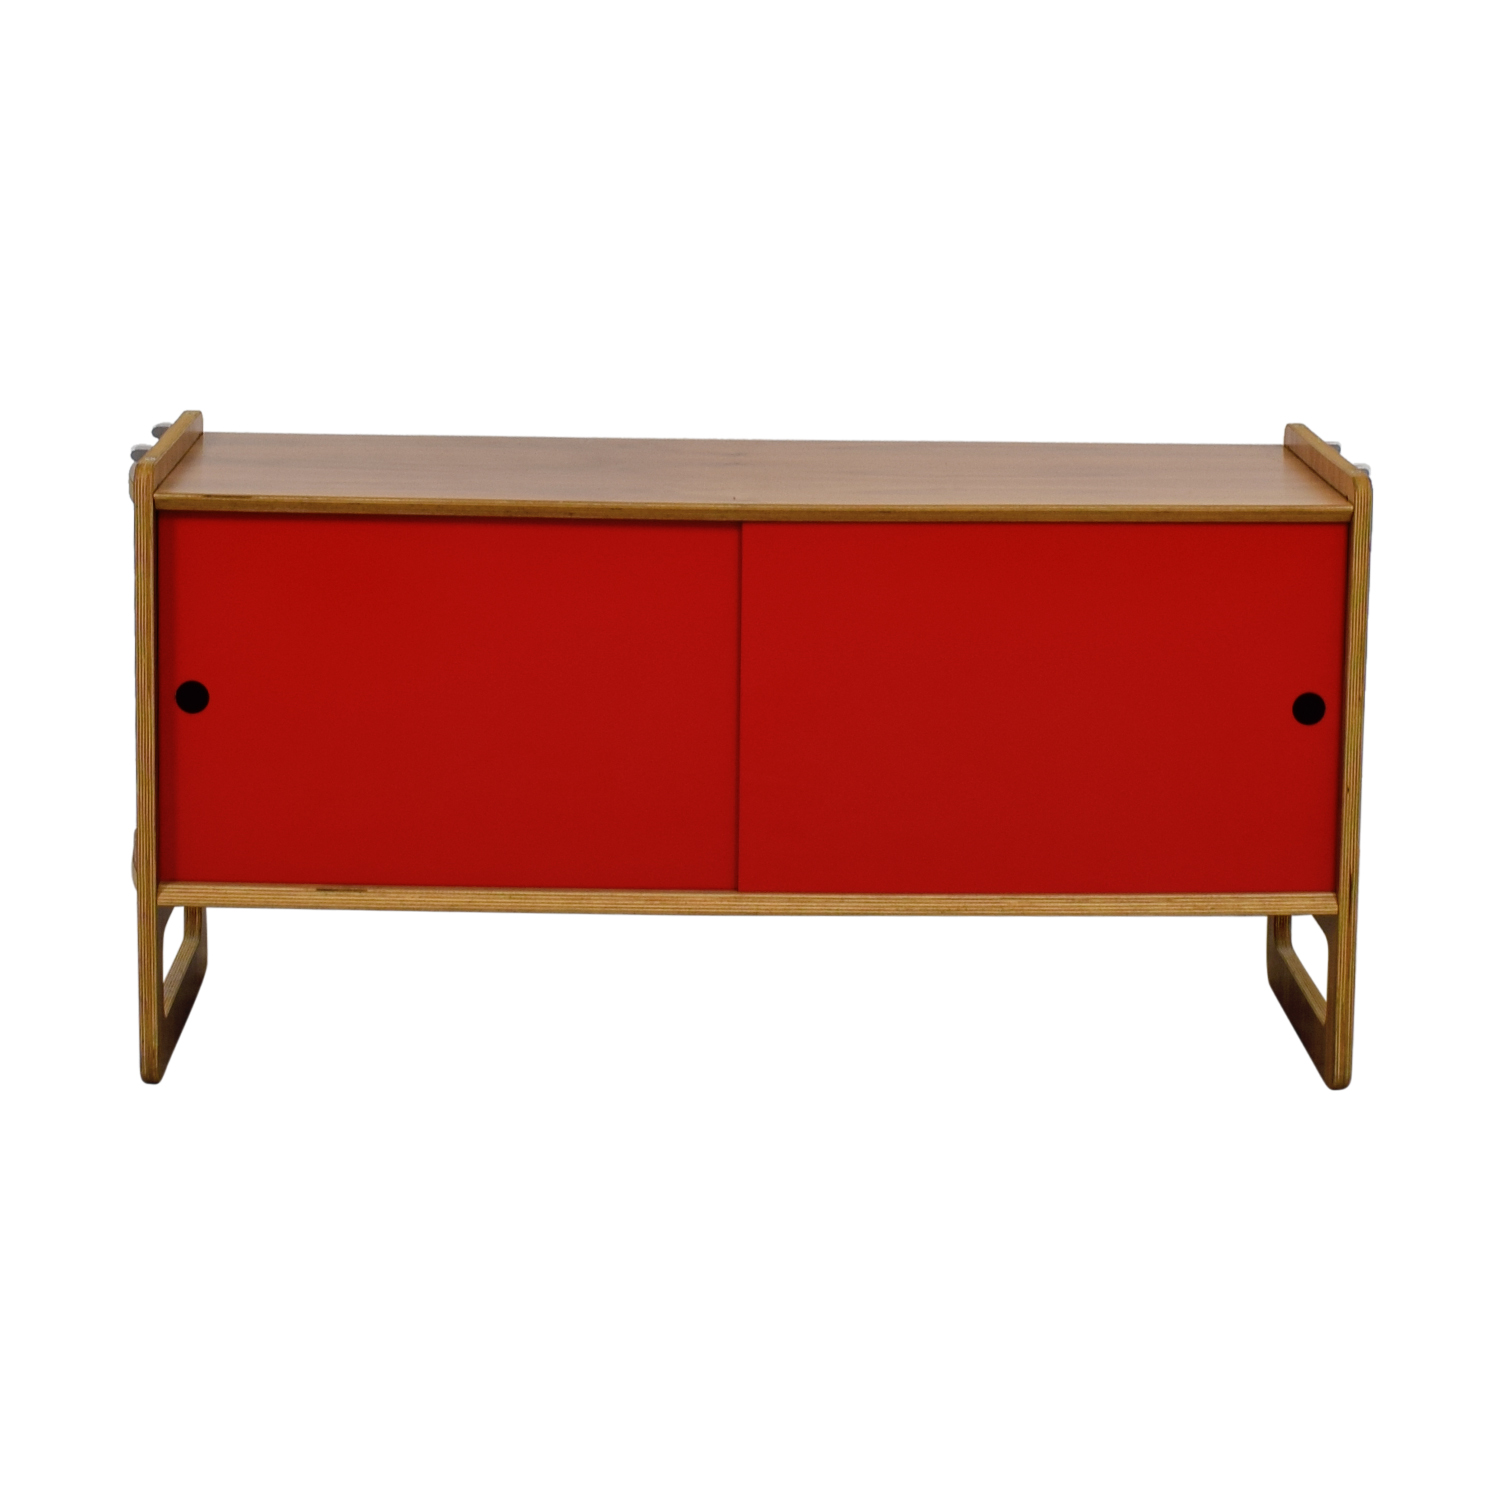 Wood and Red Sliding Door Cabinet Cabinets & Sideboards